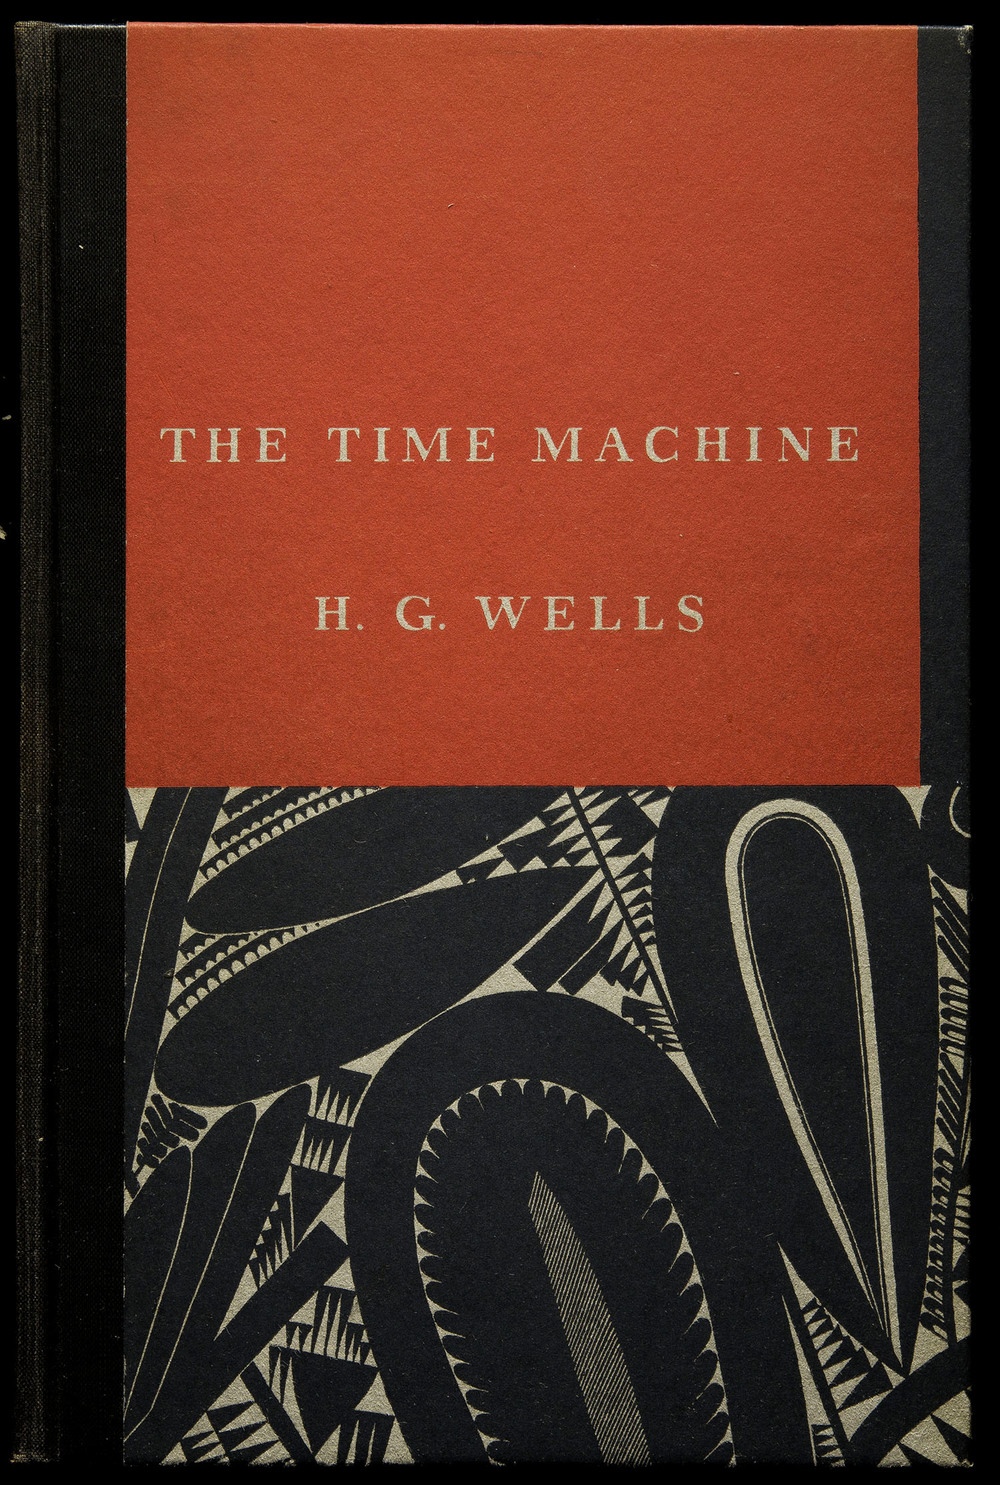 The Time Machine ,  Random House, New York, 1931, 15.6 x 23.5 cm